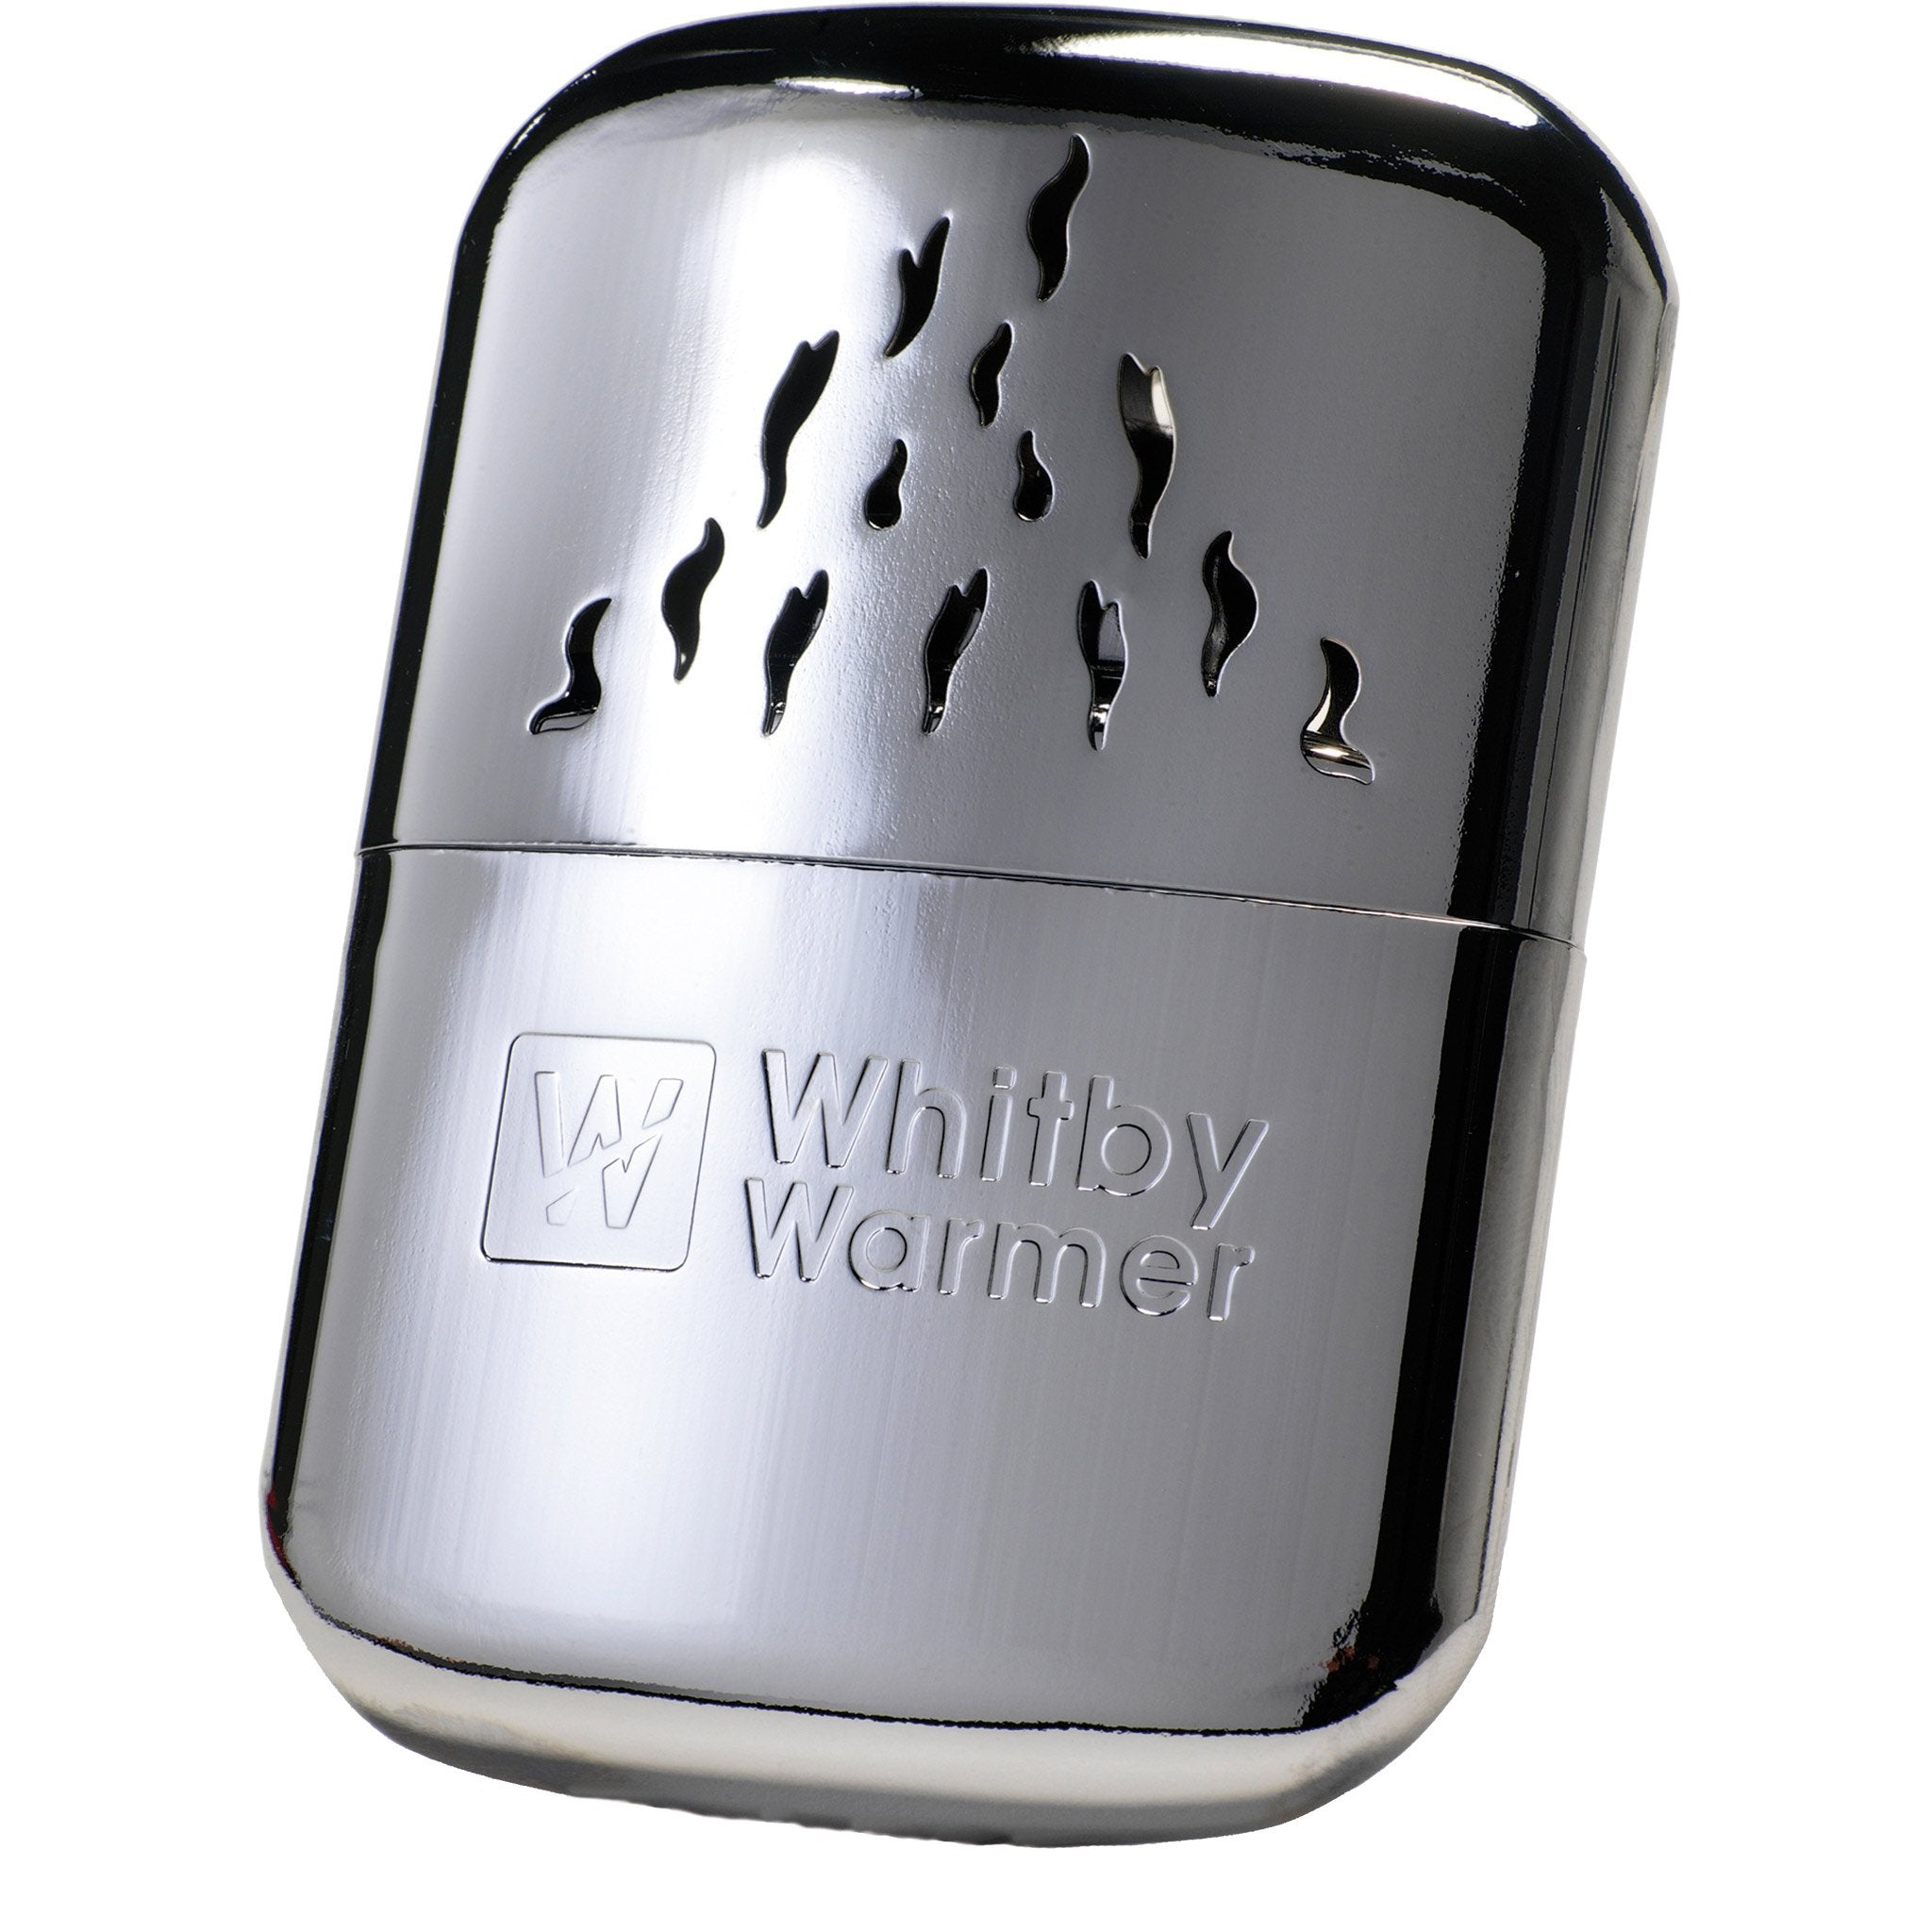 Whitby & Co Hand Warmer - Arthur Beale